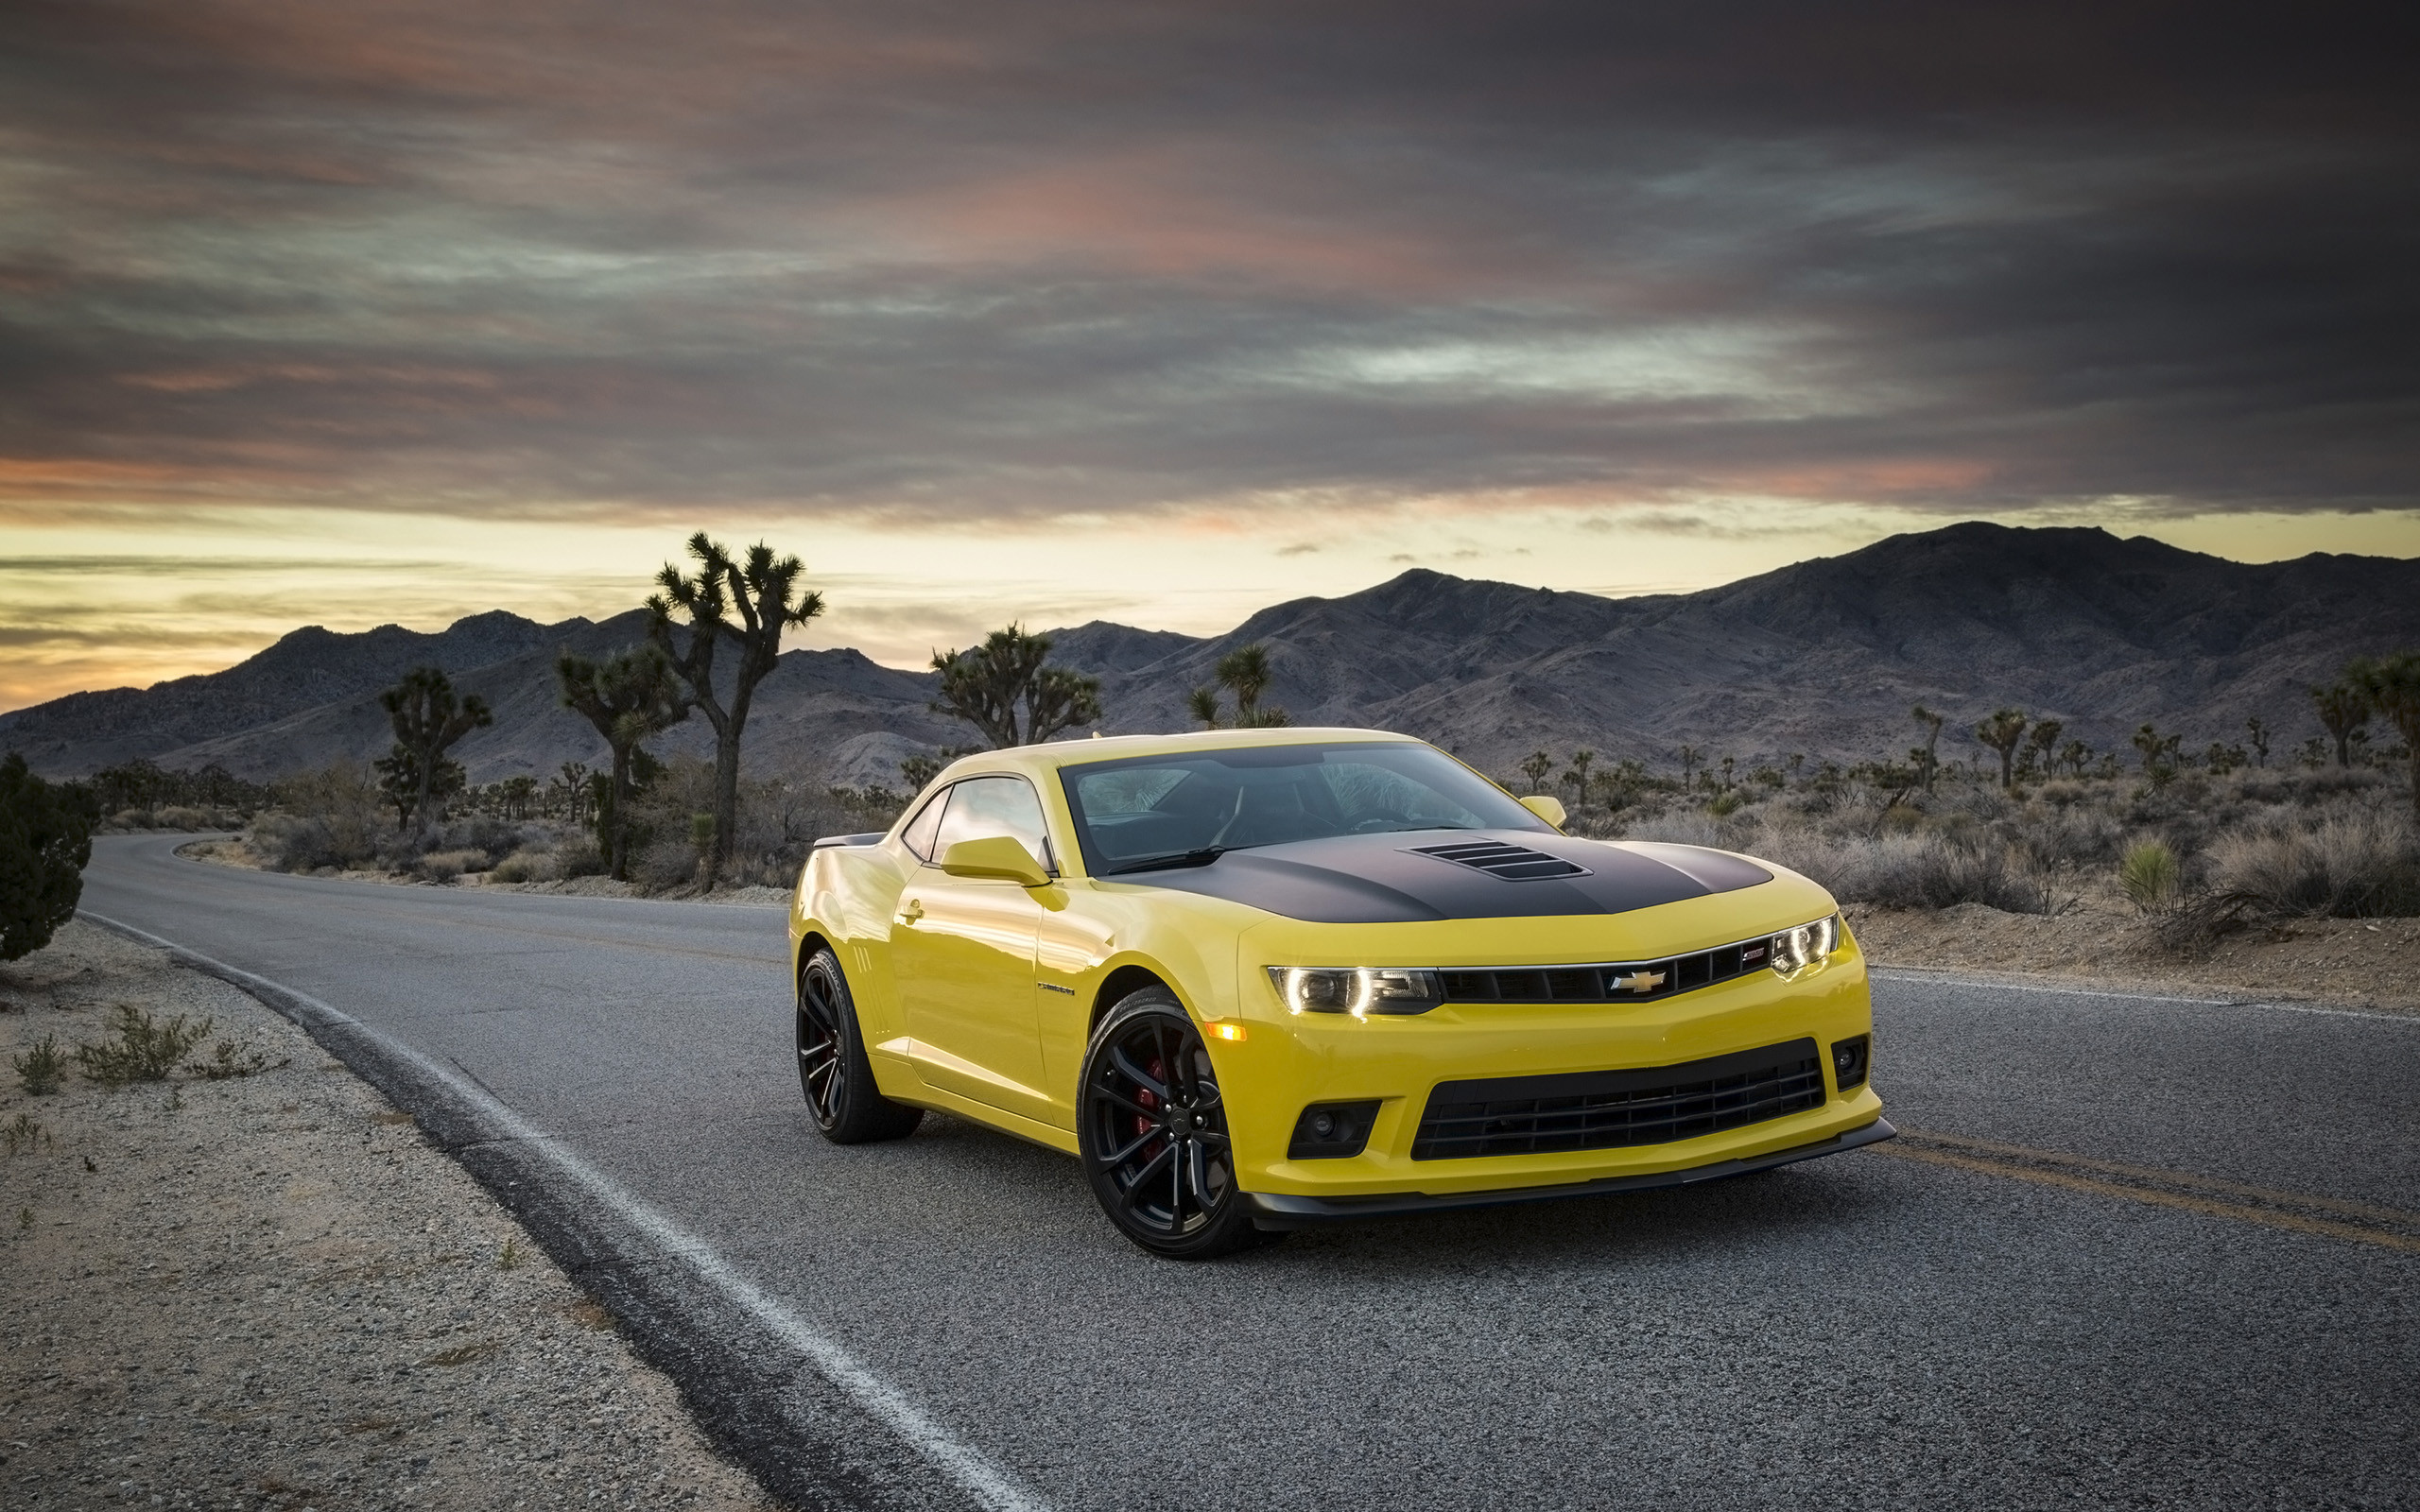 Res: 2560x1600, Chevrolet Camaro Wallpaper HD